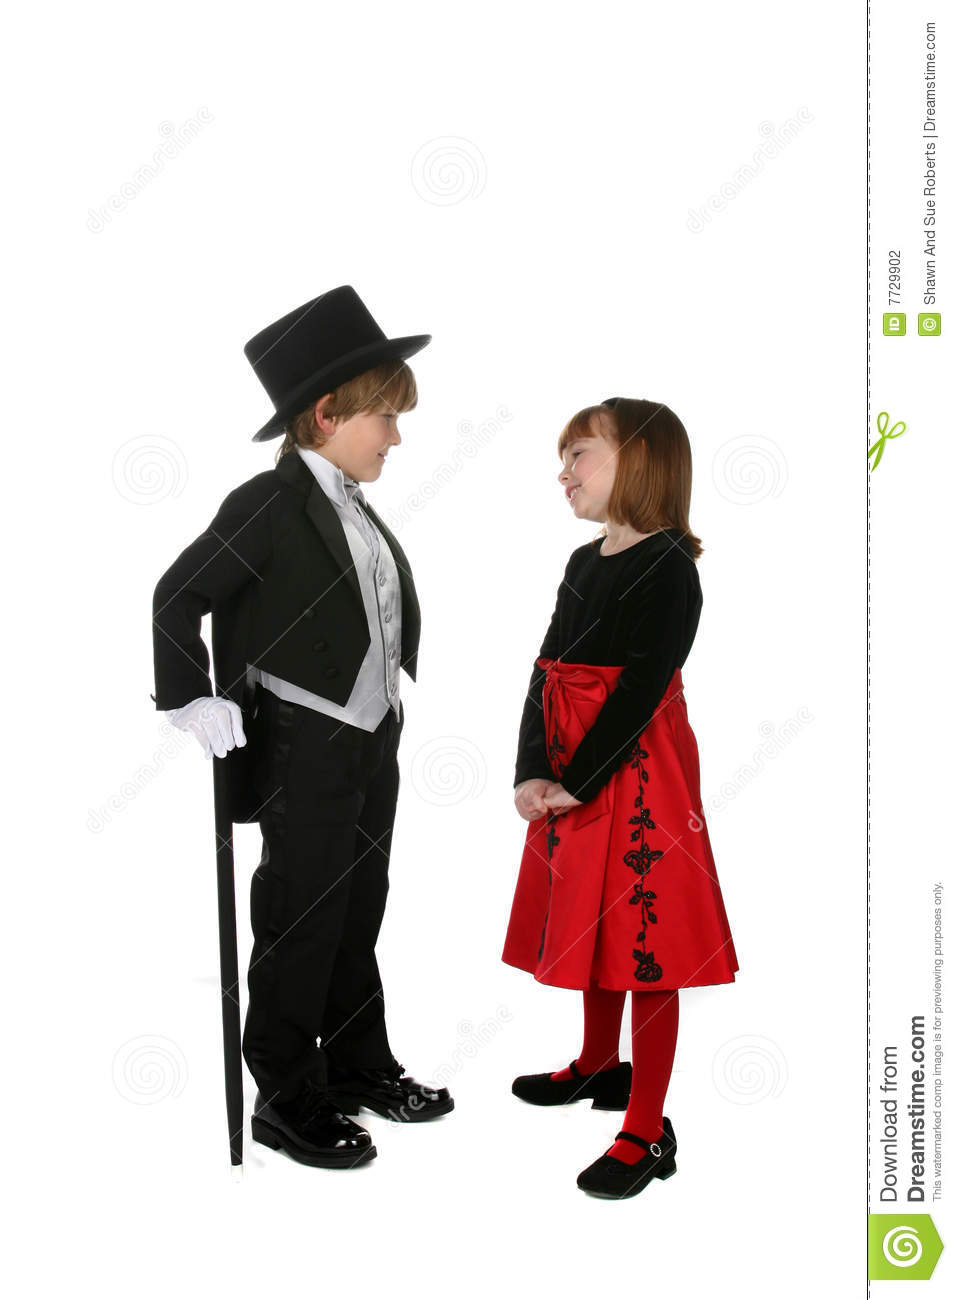 Cute Young Children In Formal Dressy Clothing Stock Photography.